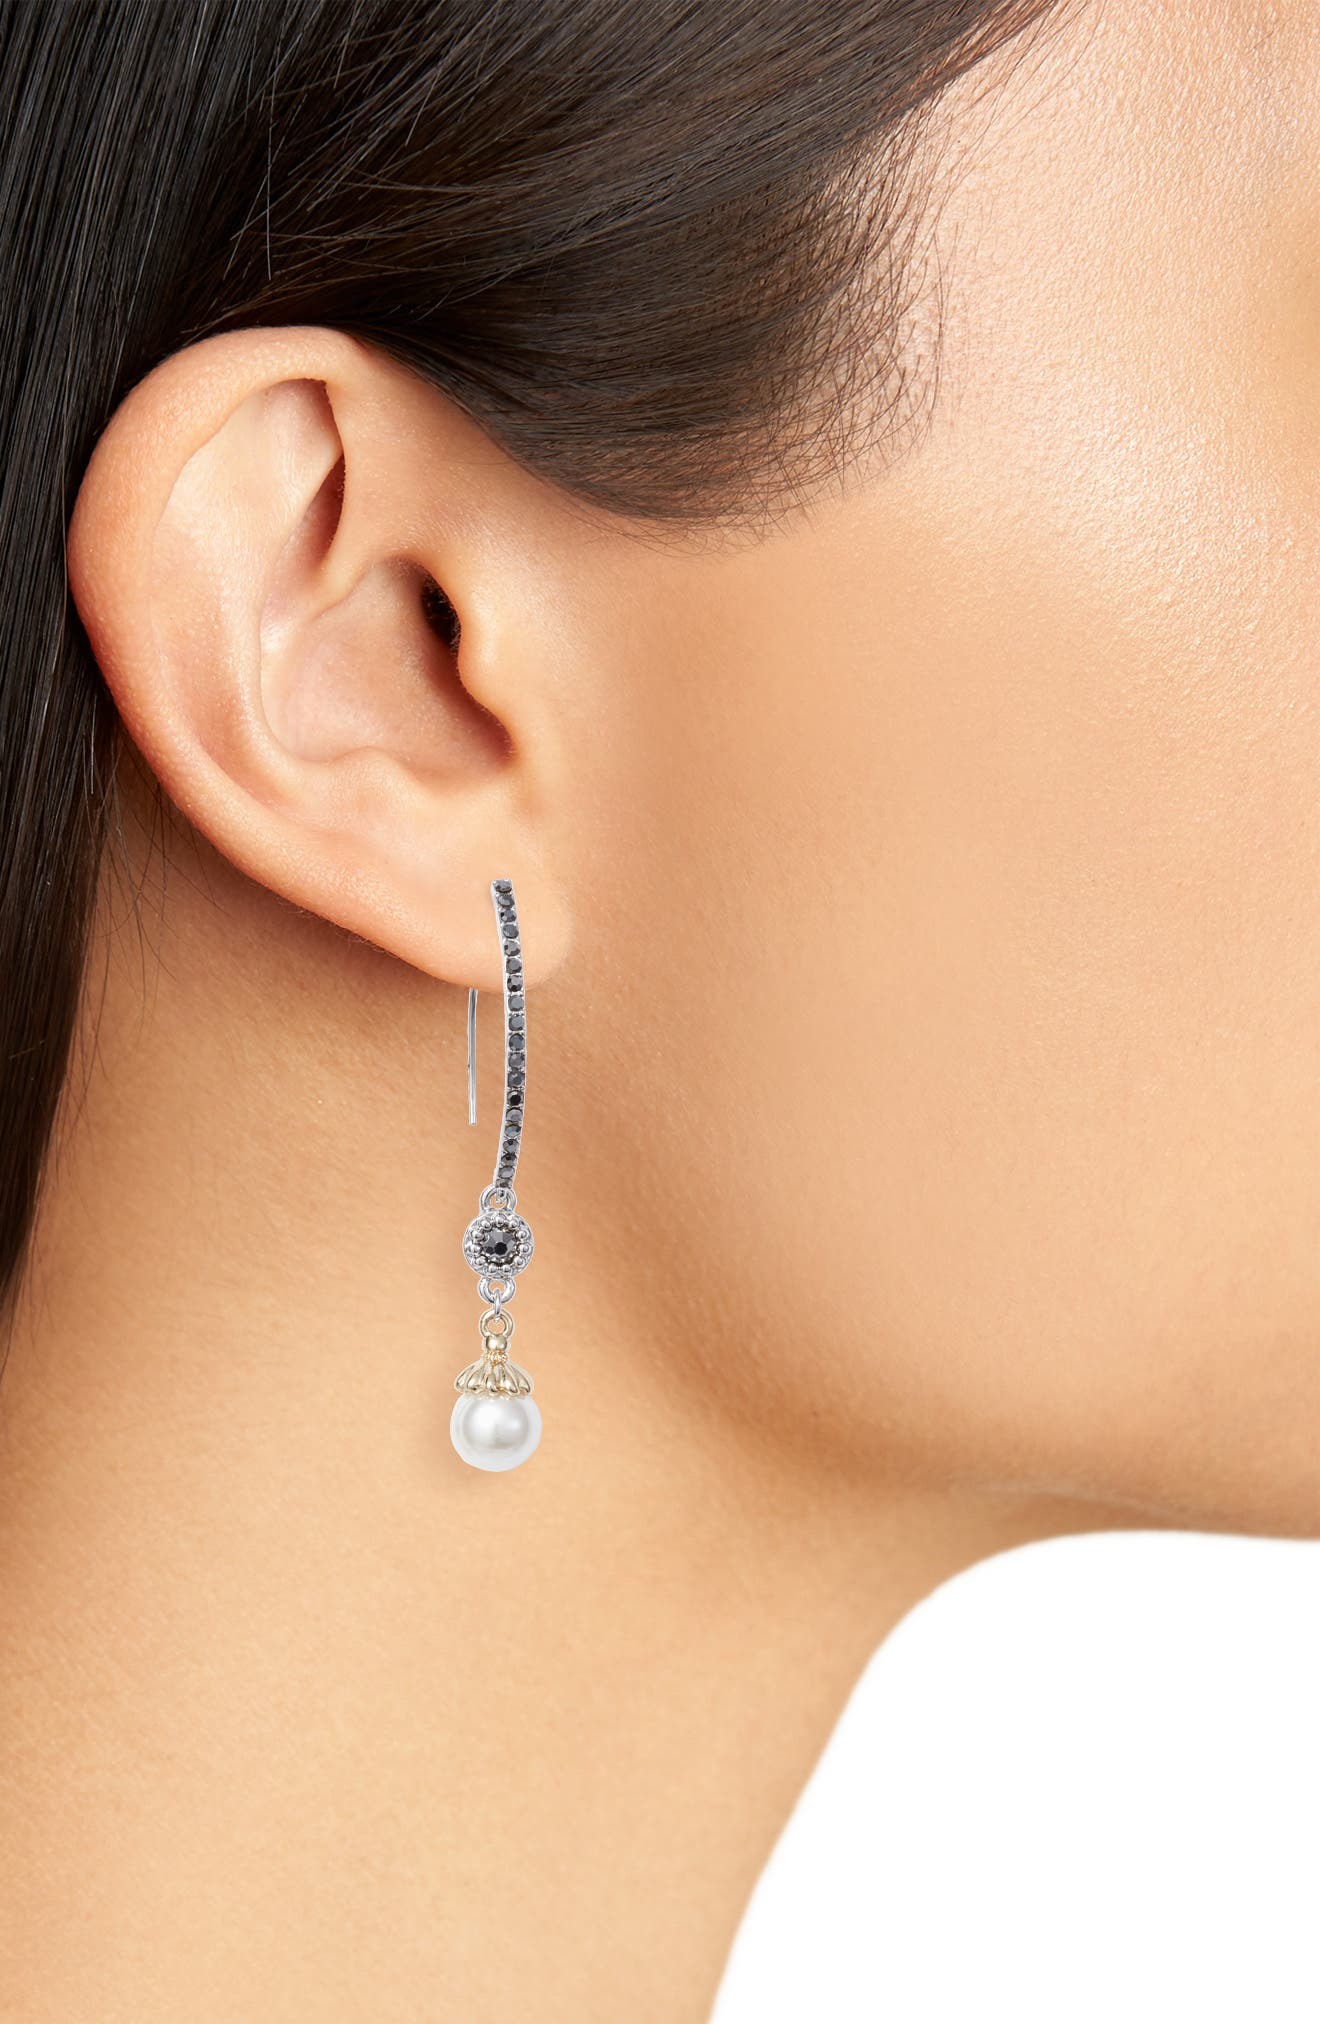 JENNY PACKHAM, Imitation Pearl Threader Earrings, Alternate thumbnail 2, color, PEARL/ SILVER